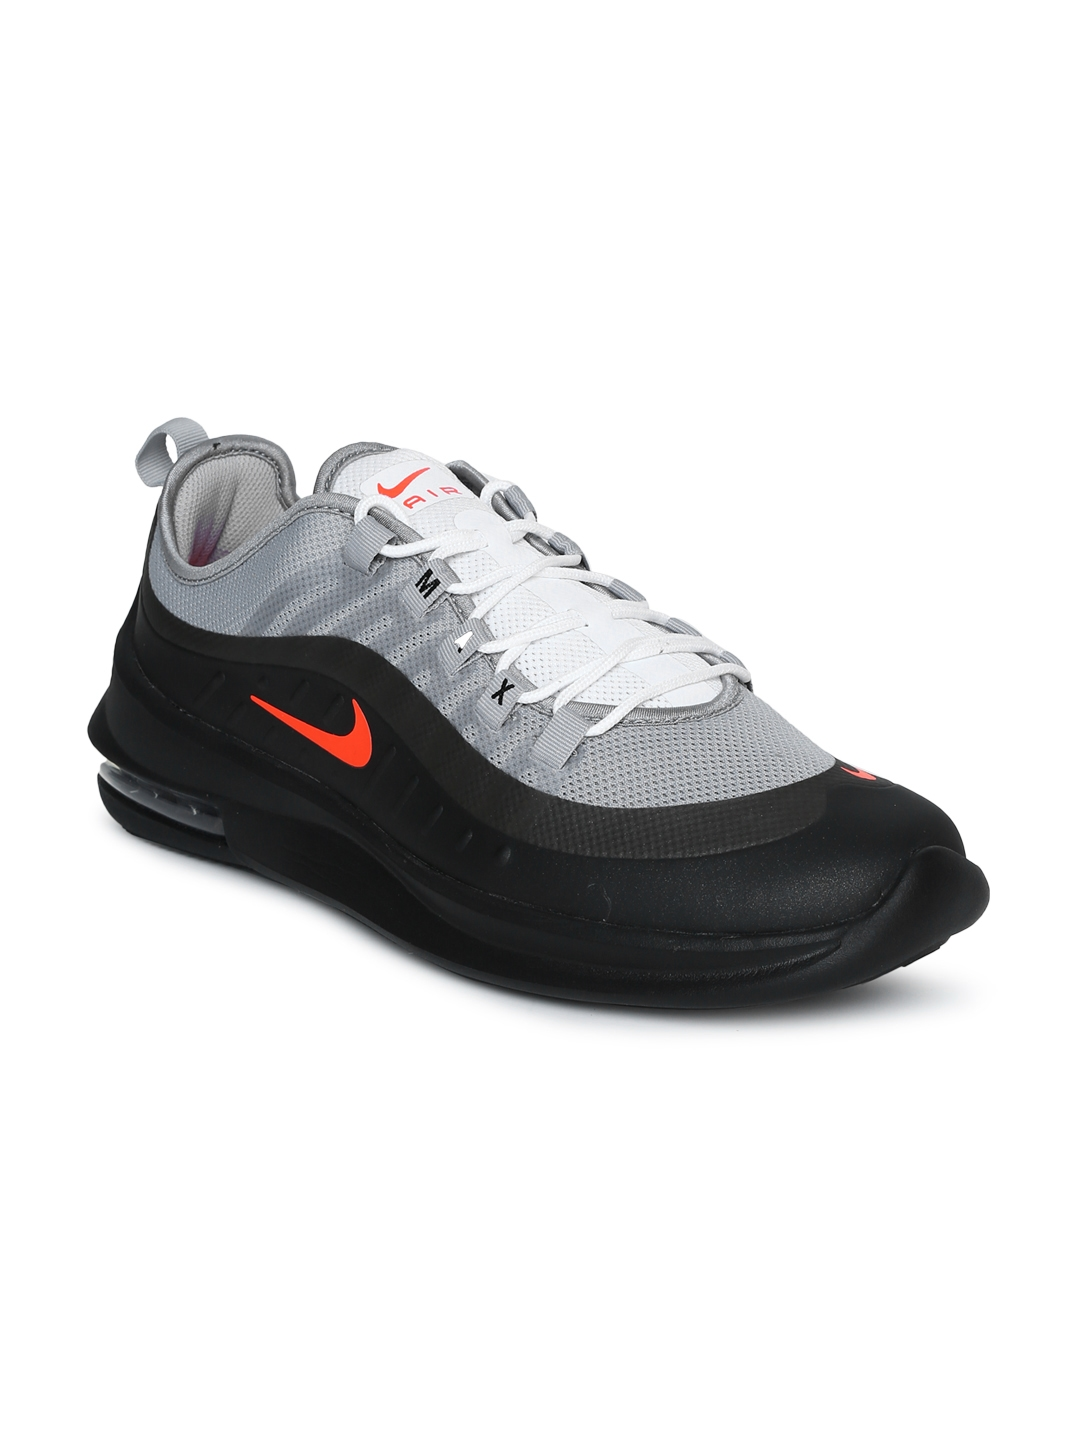 Buy Nike Men Black AIR MAX AXIS Sneakers - Casual Shoes for Men ... 0cbc18d2c